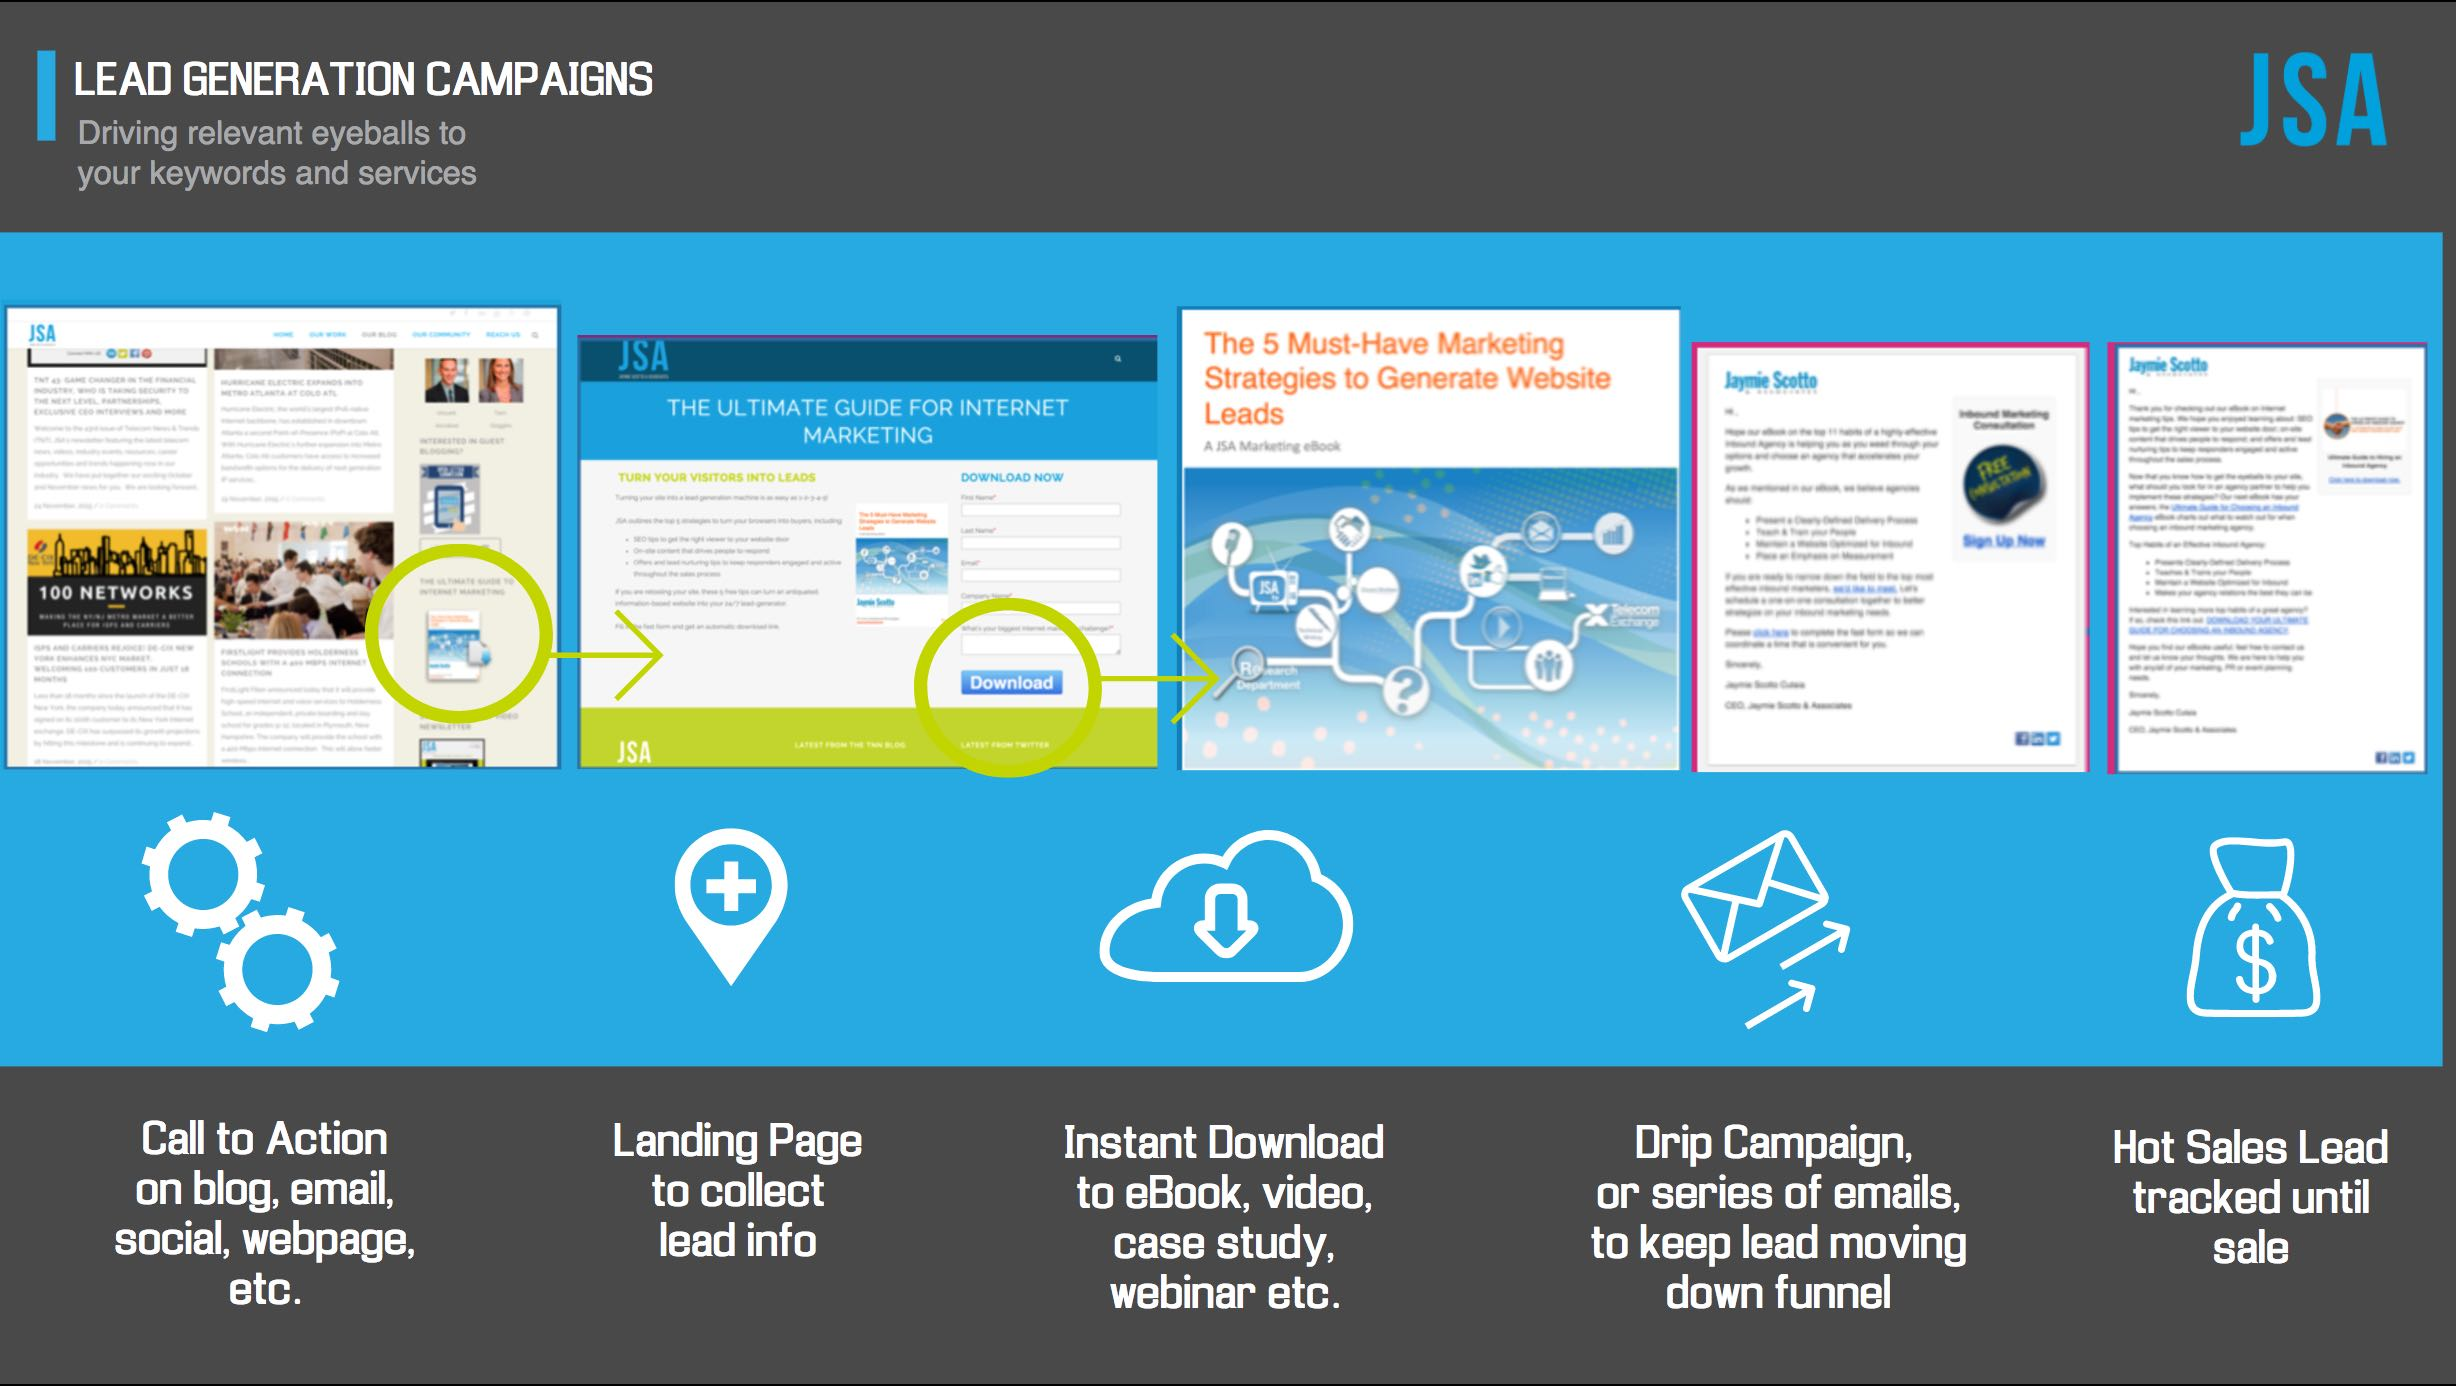 Lead-Generation-Campaign-Example-JSA (1)